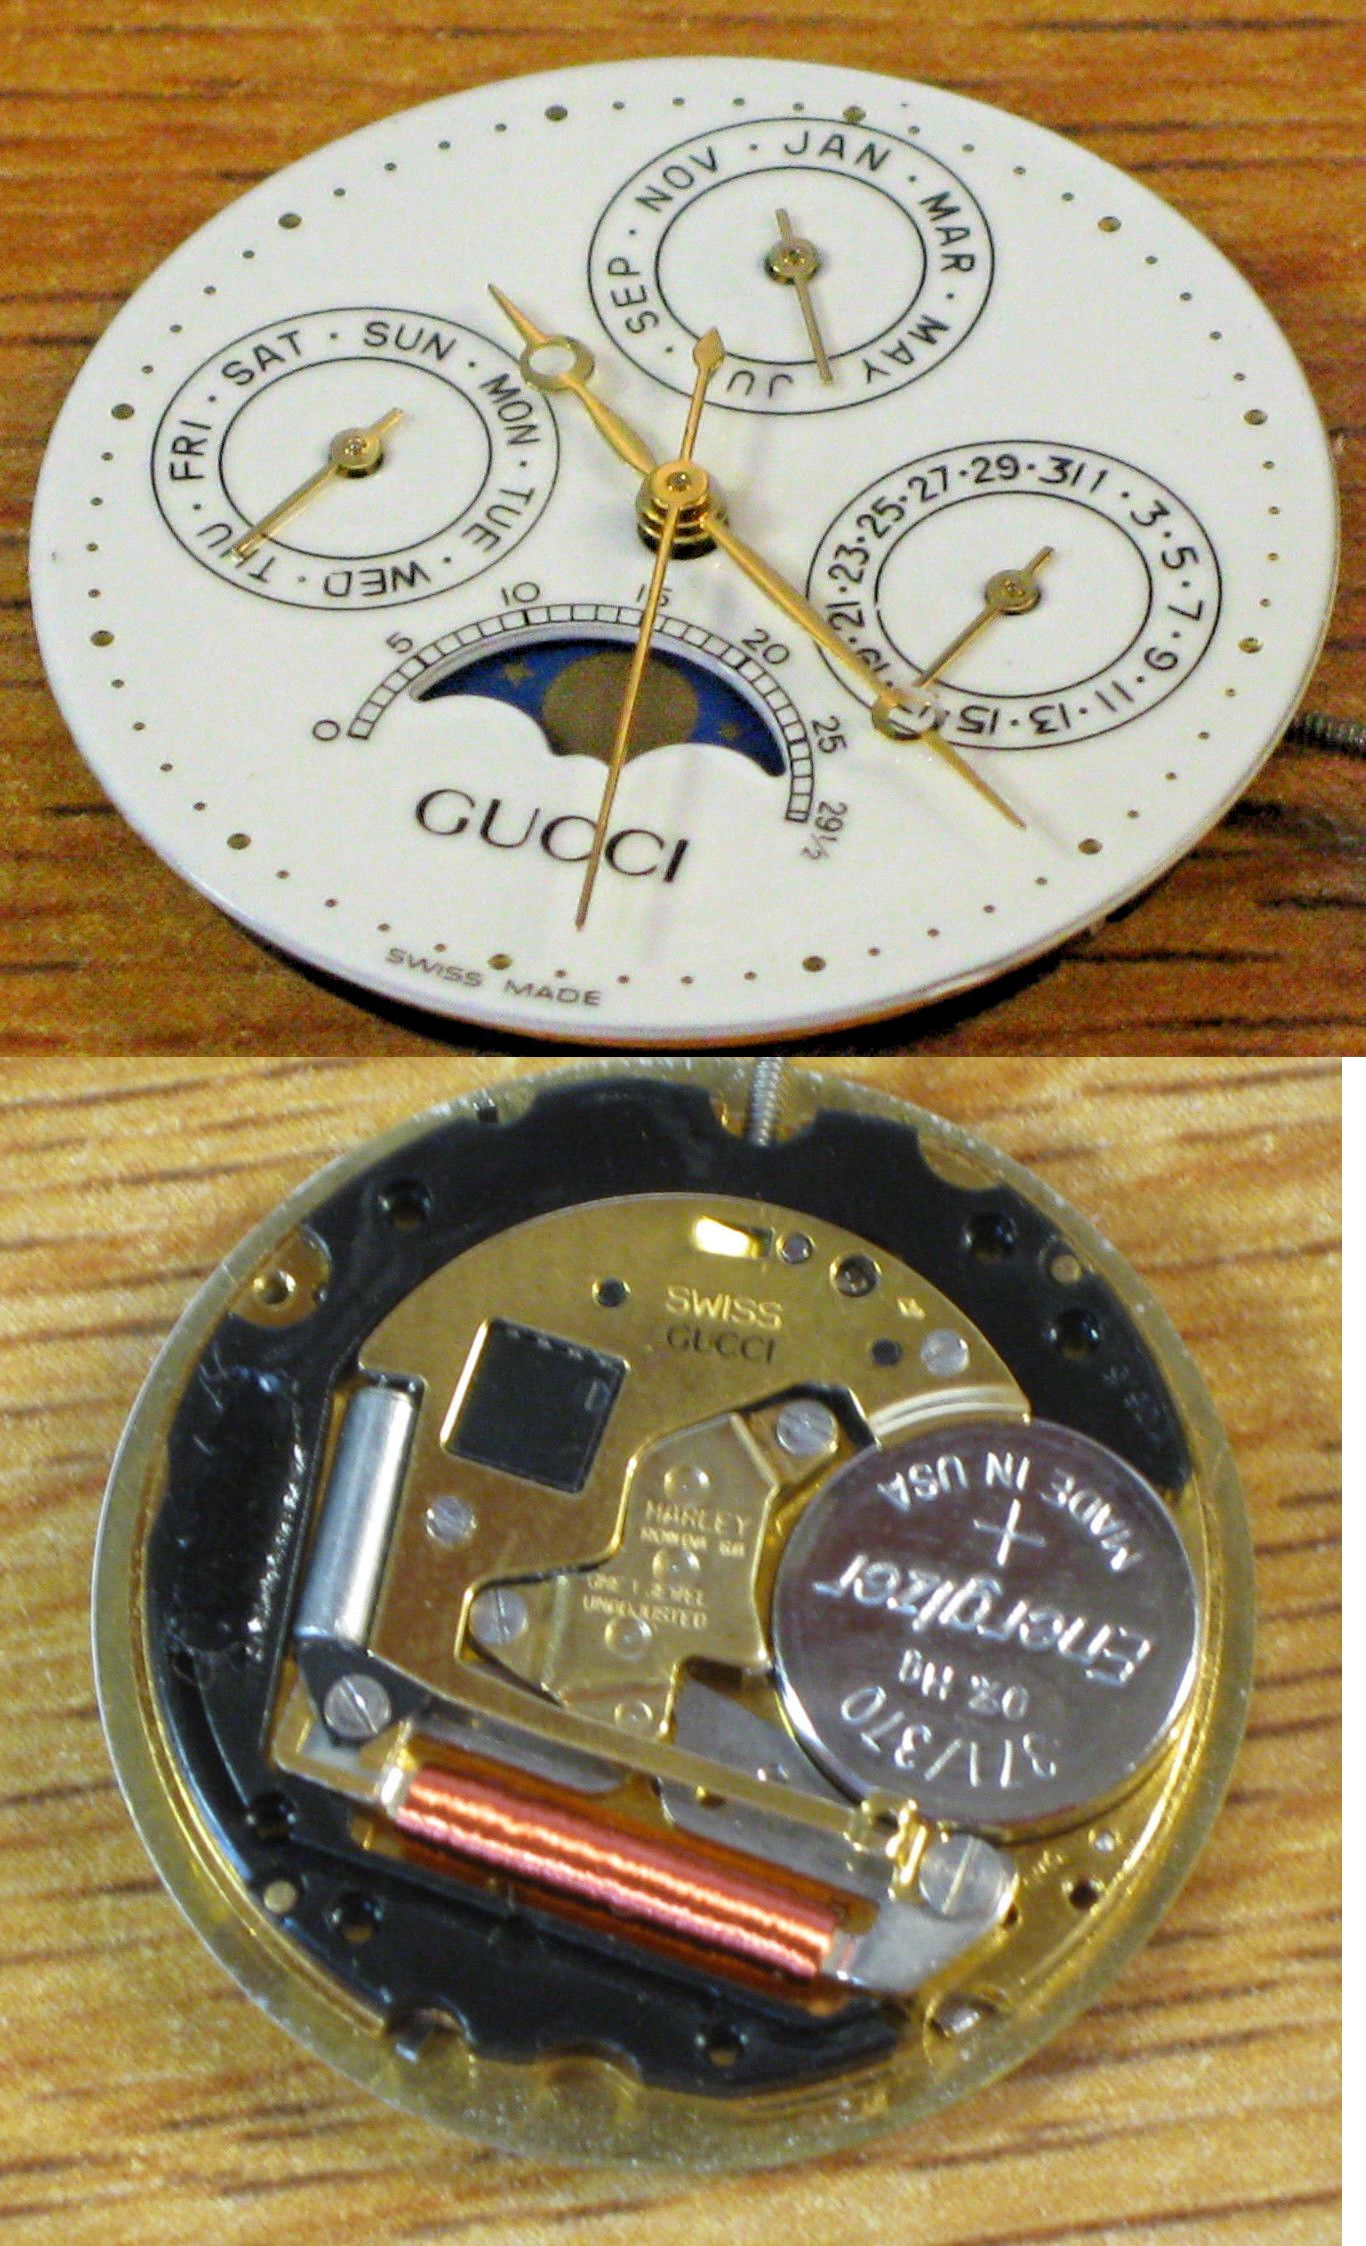 044ef13e365 Movements 57720  Swiss Gucci Harley Ronda 706.3 Quartz Watch Movement  Working -  BUY IT NOW ONLY   45 on eBay!